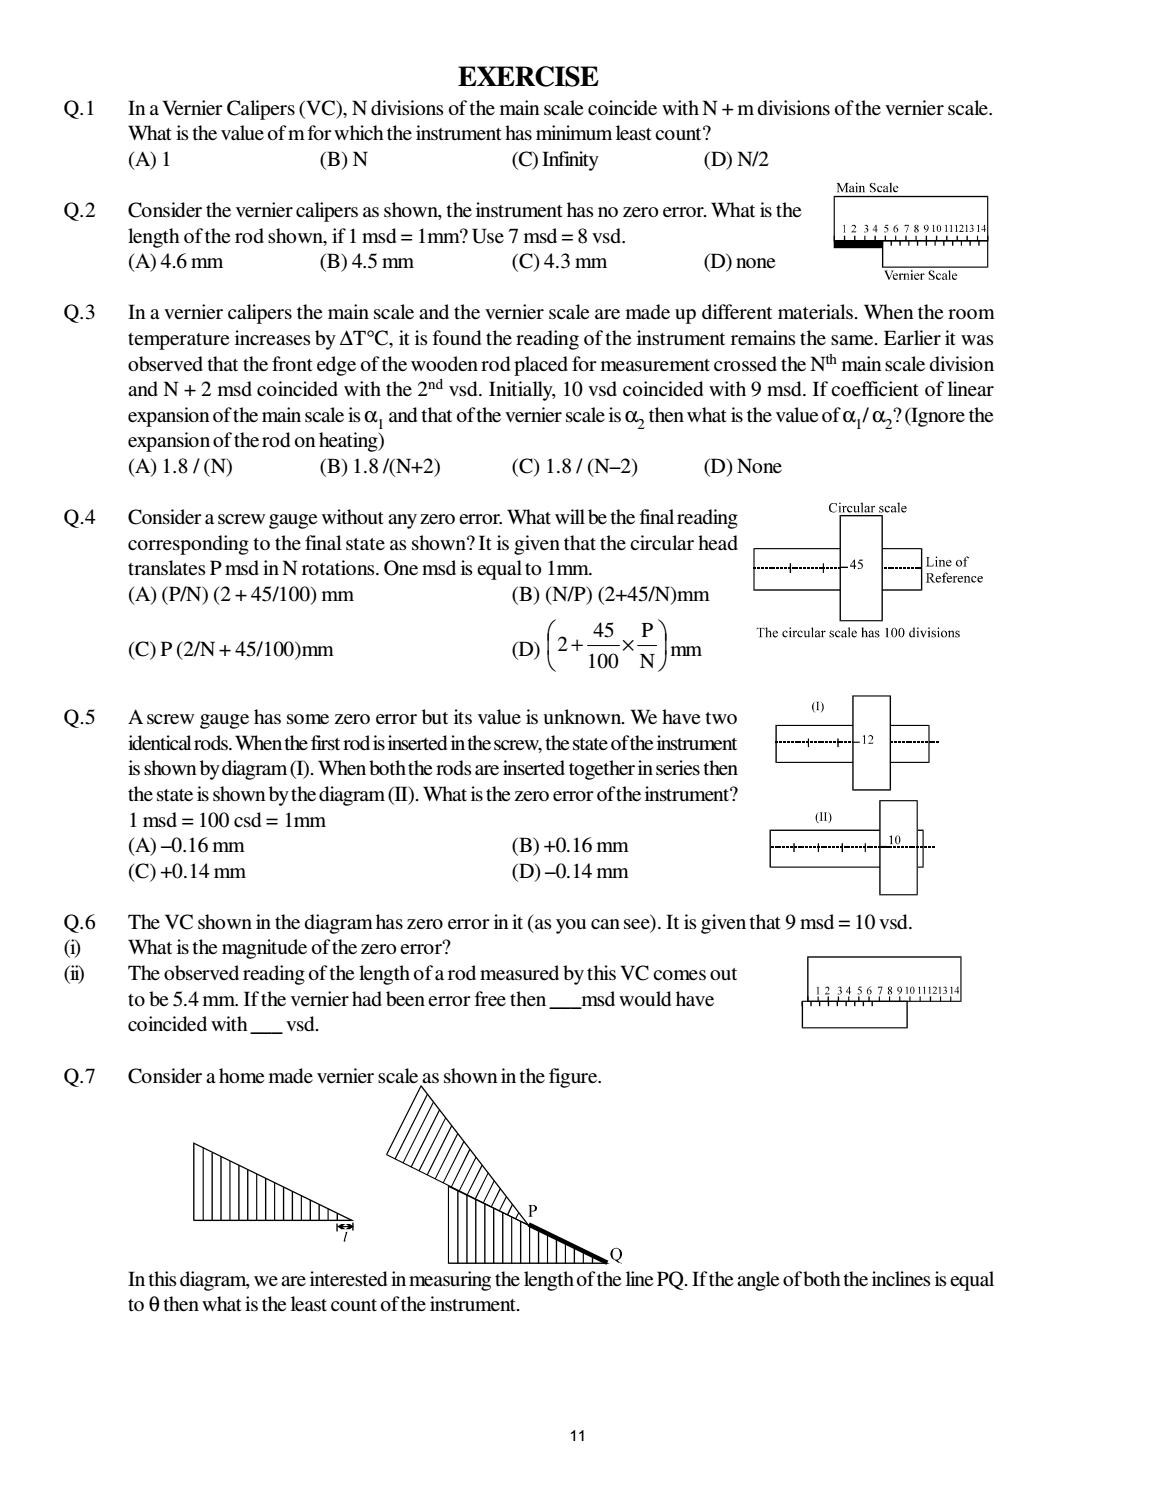 Doc 116 b p s xi physics iit jee advanced study package 2014 15 by s doc 116 b p s xi physics iit jee advanced study package 2014 15 by sdharmaraj issuu ccuart Images